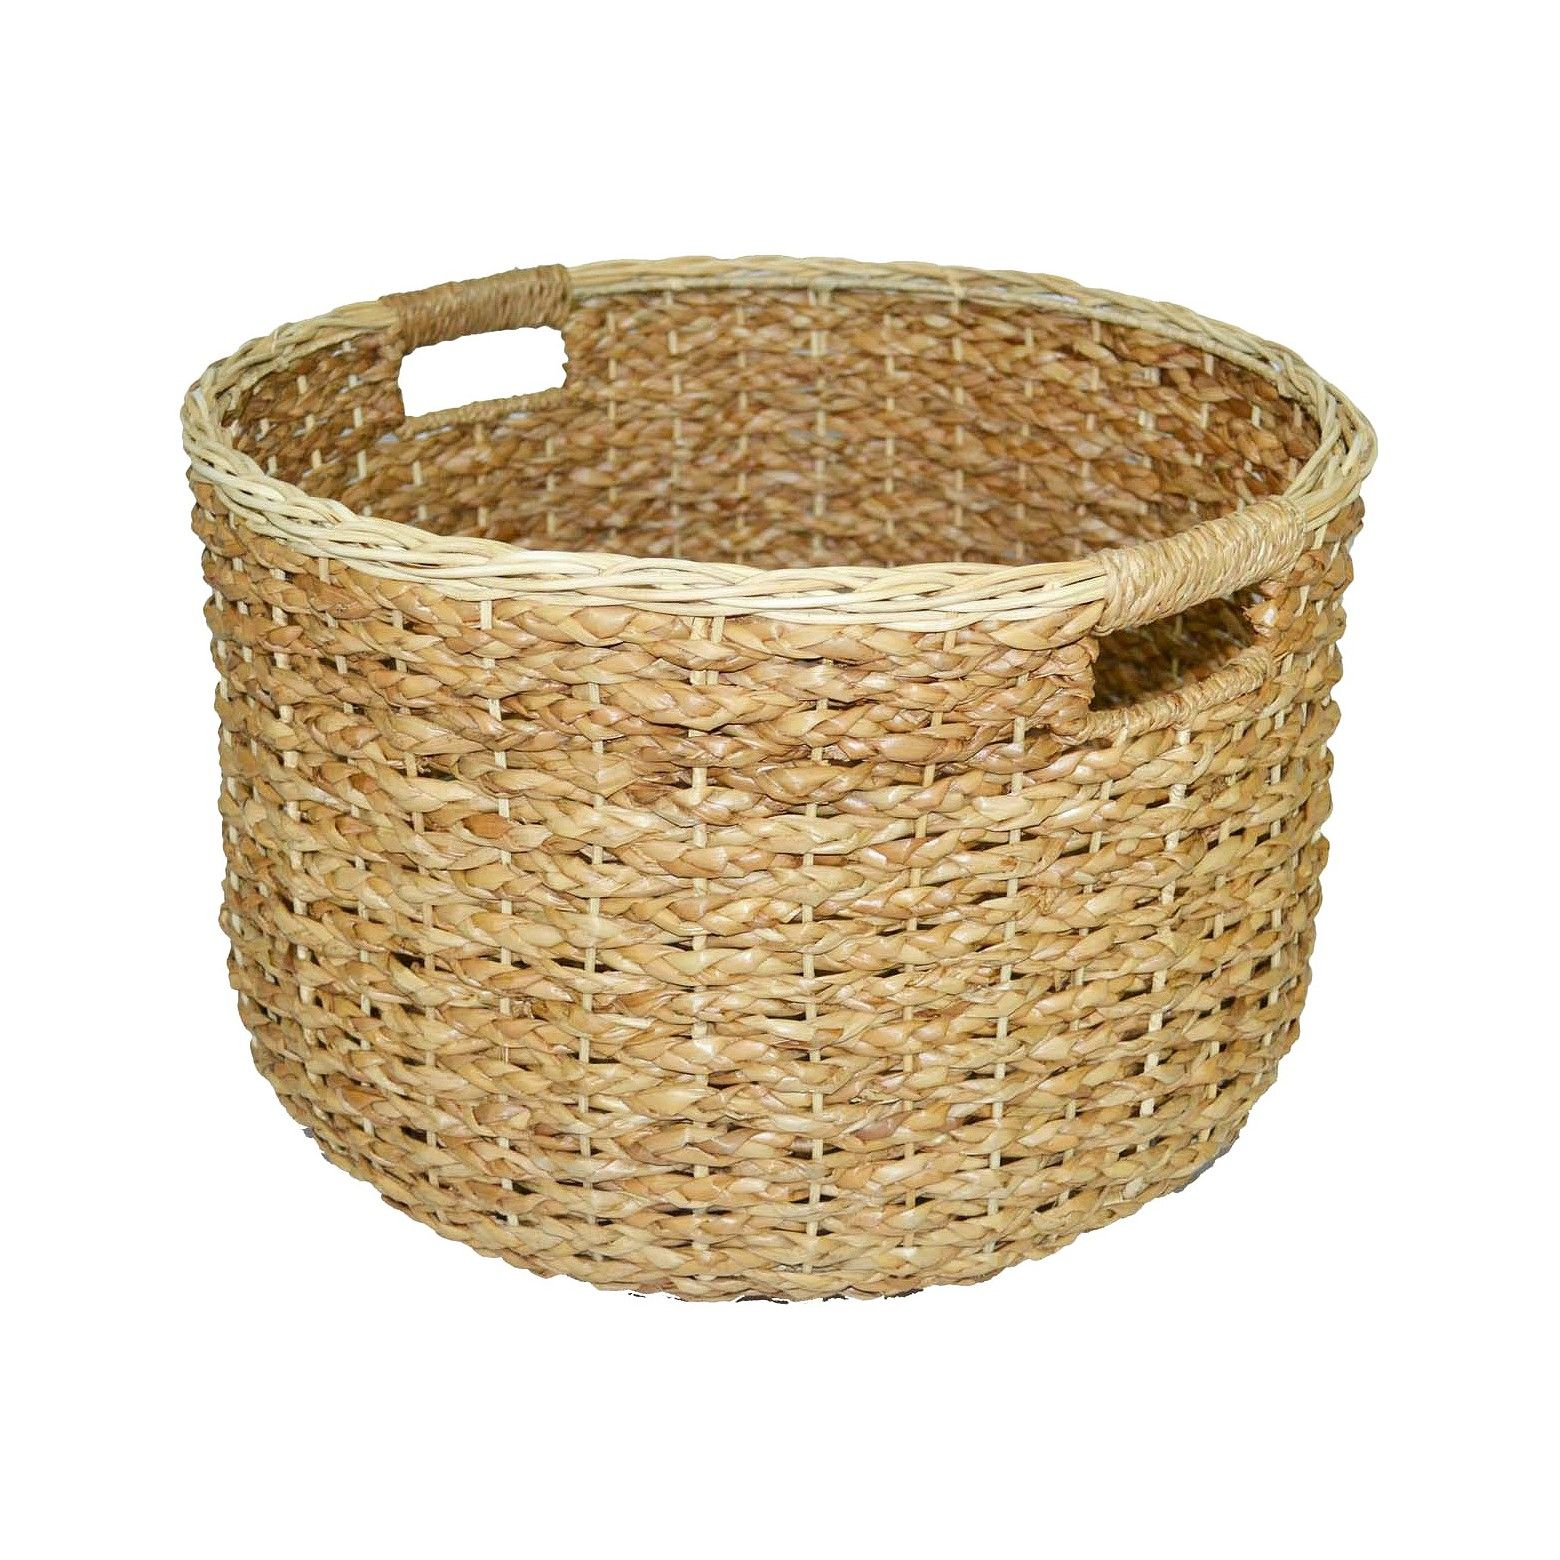 Looking For A Stylish And Functional Storage Basket This Round Seagrass Wicker Decorative Basket From Threshol Cube Storage Baskets Fall Entryway Decor Wicker